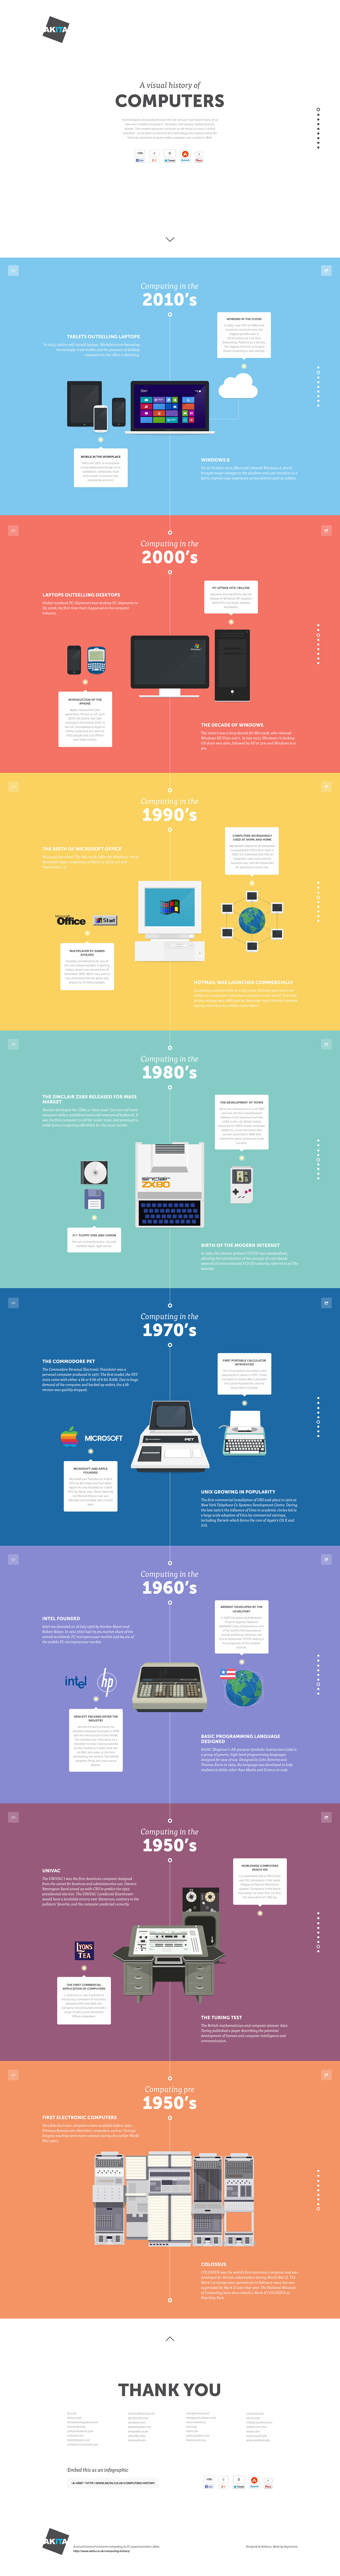 A visual history of computers Website Screenshot